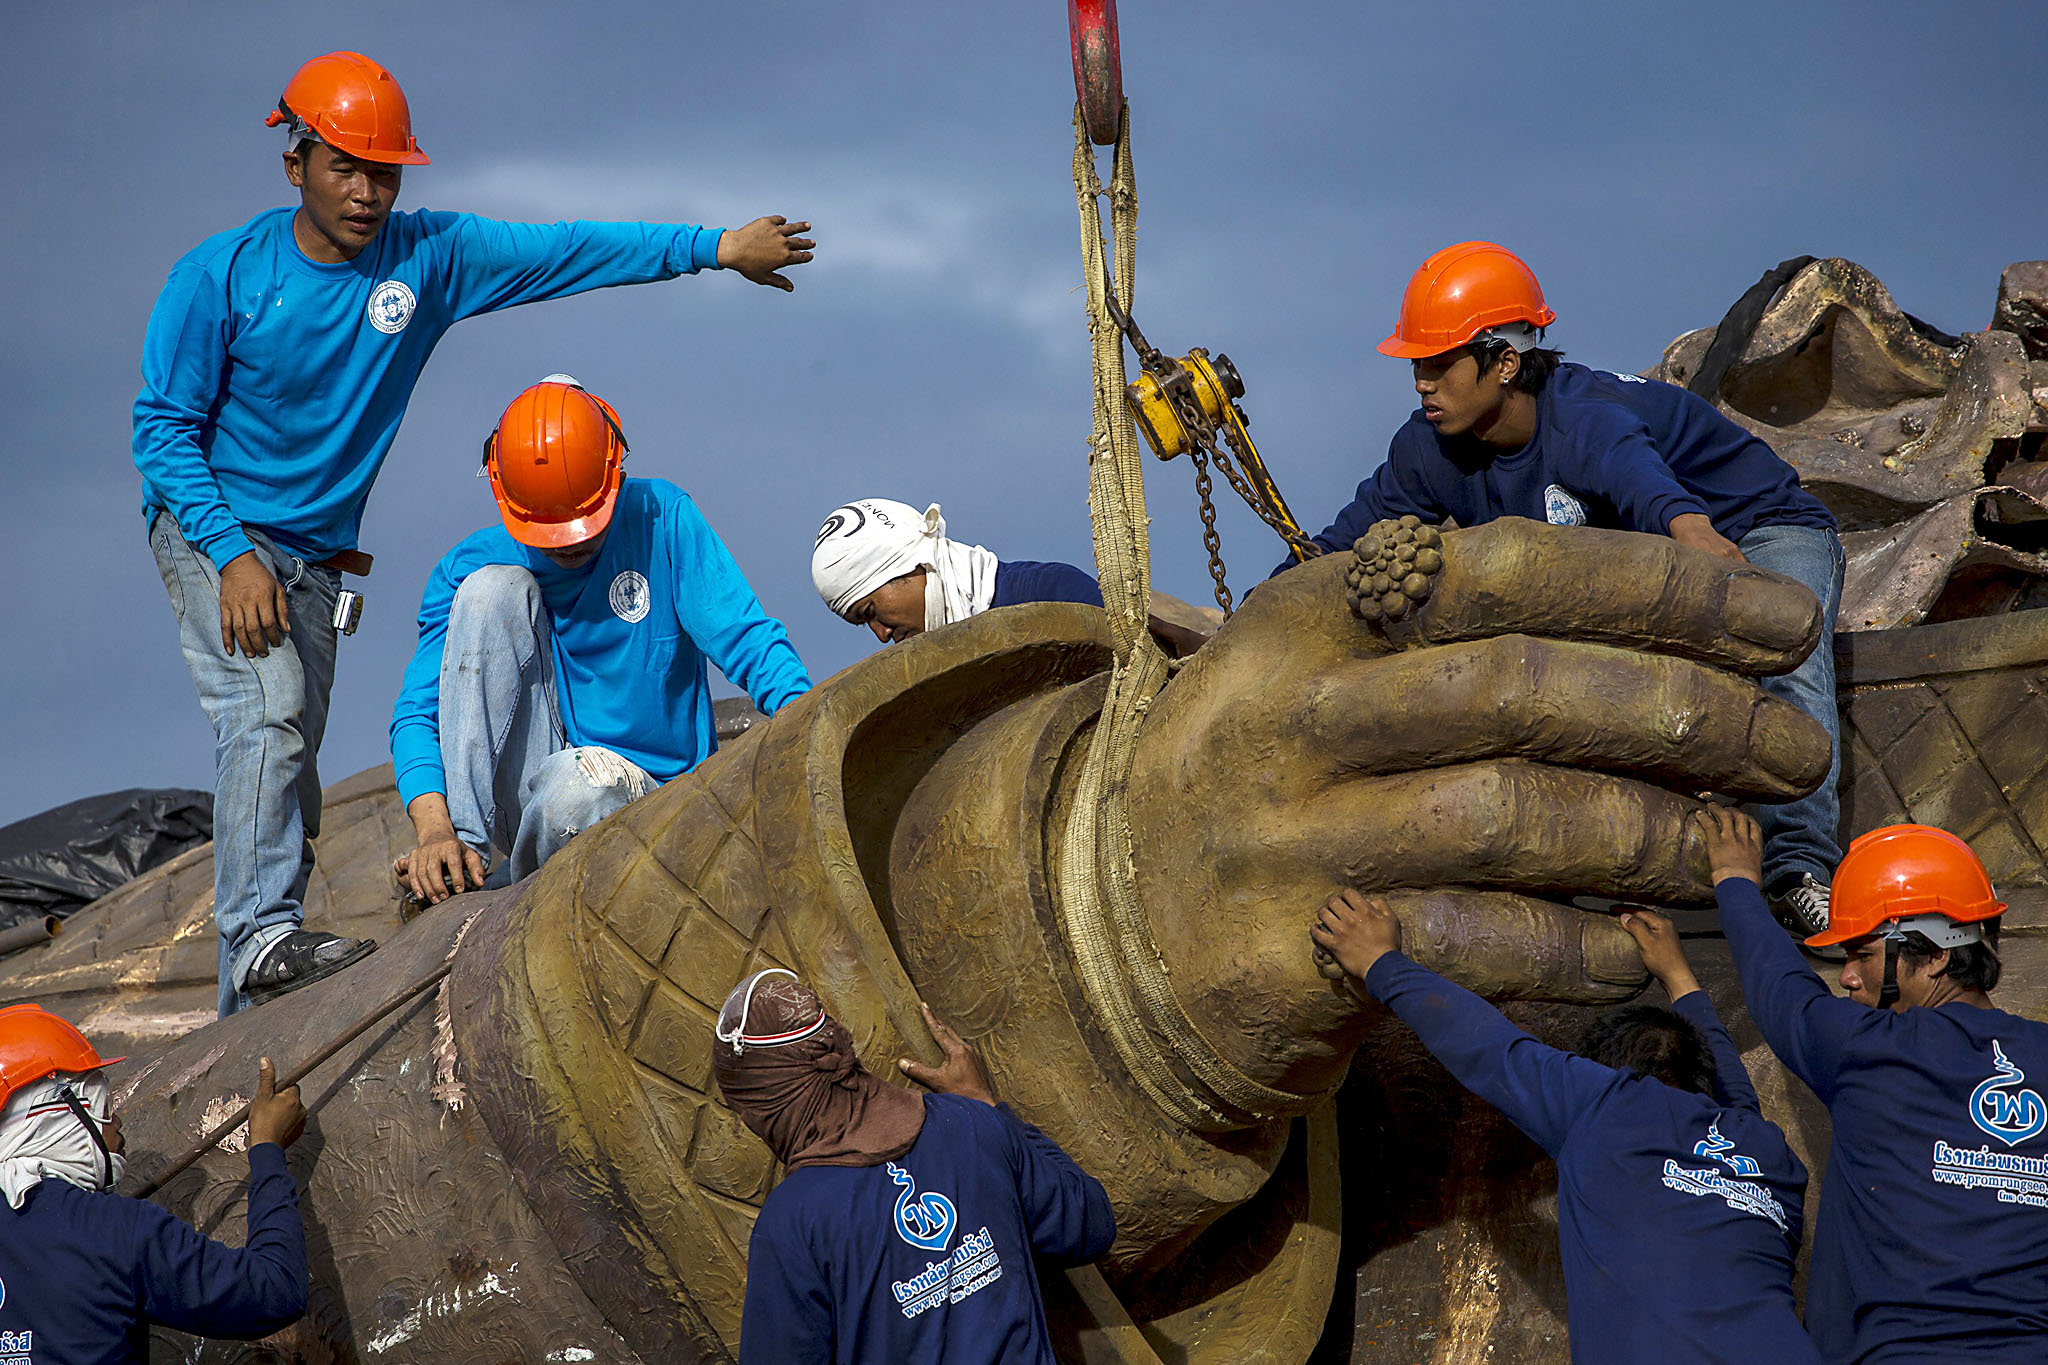 Labourers use a crane to lift the hand of a giant bronze statue of former King Rama I at Ratchapakdi Park in Hua Hin...Labourers use a crane to lift the hand of a giant bronze statue of former King Rama I at Ratchapakdi Park in Hua Hin, Prachuap Khiri Khan province, Thailand, August 4, 2015. The park is being constructed by the Thai army to honor past Thai monarchs and is situated on an army compound near the Klai Kangwon Palace. The project is estimated to cost about 700 million baht ($20,073,991), according to local media. REUTERS/Athit Perawongmetha TPX IMAGES OF THE DAY